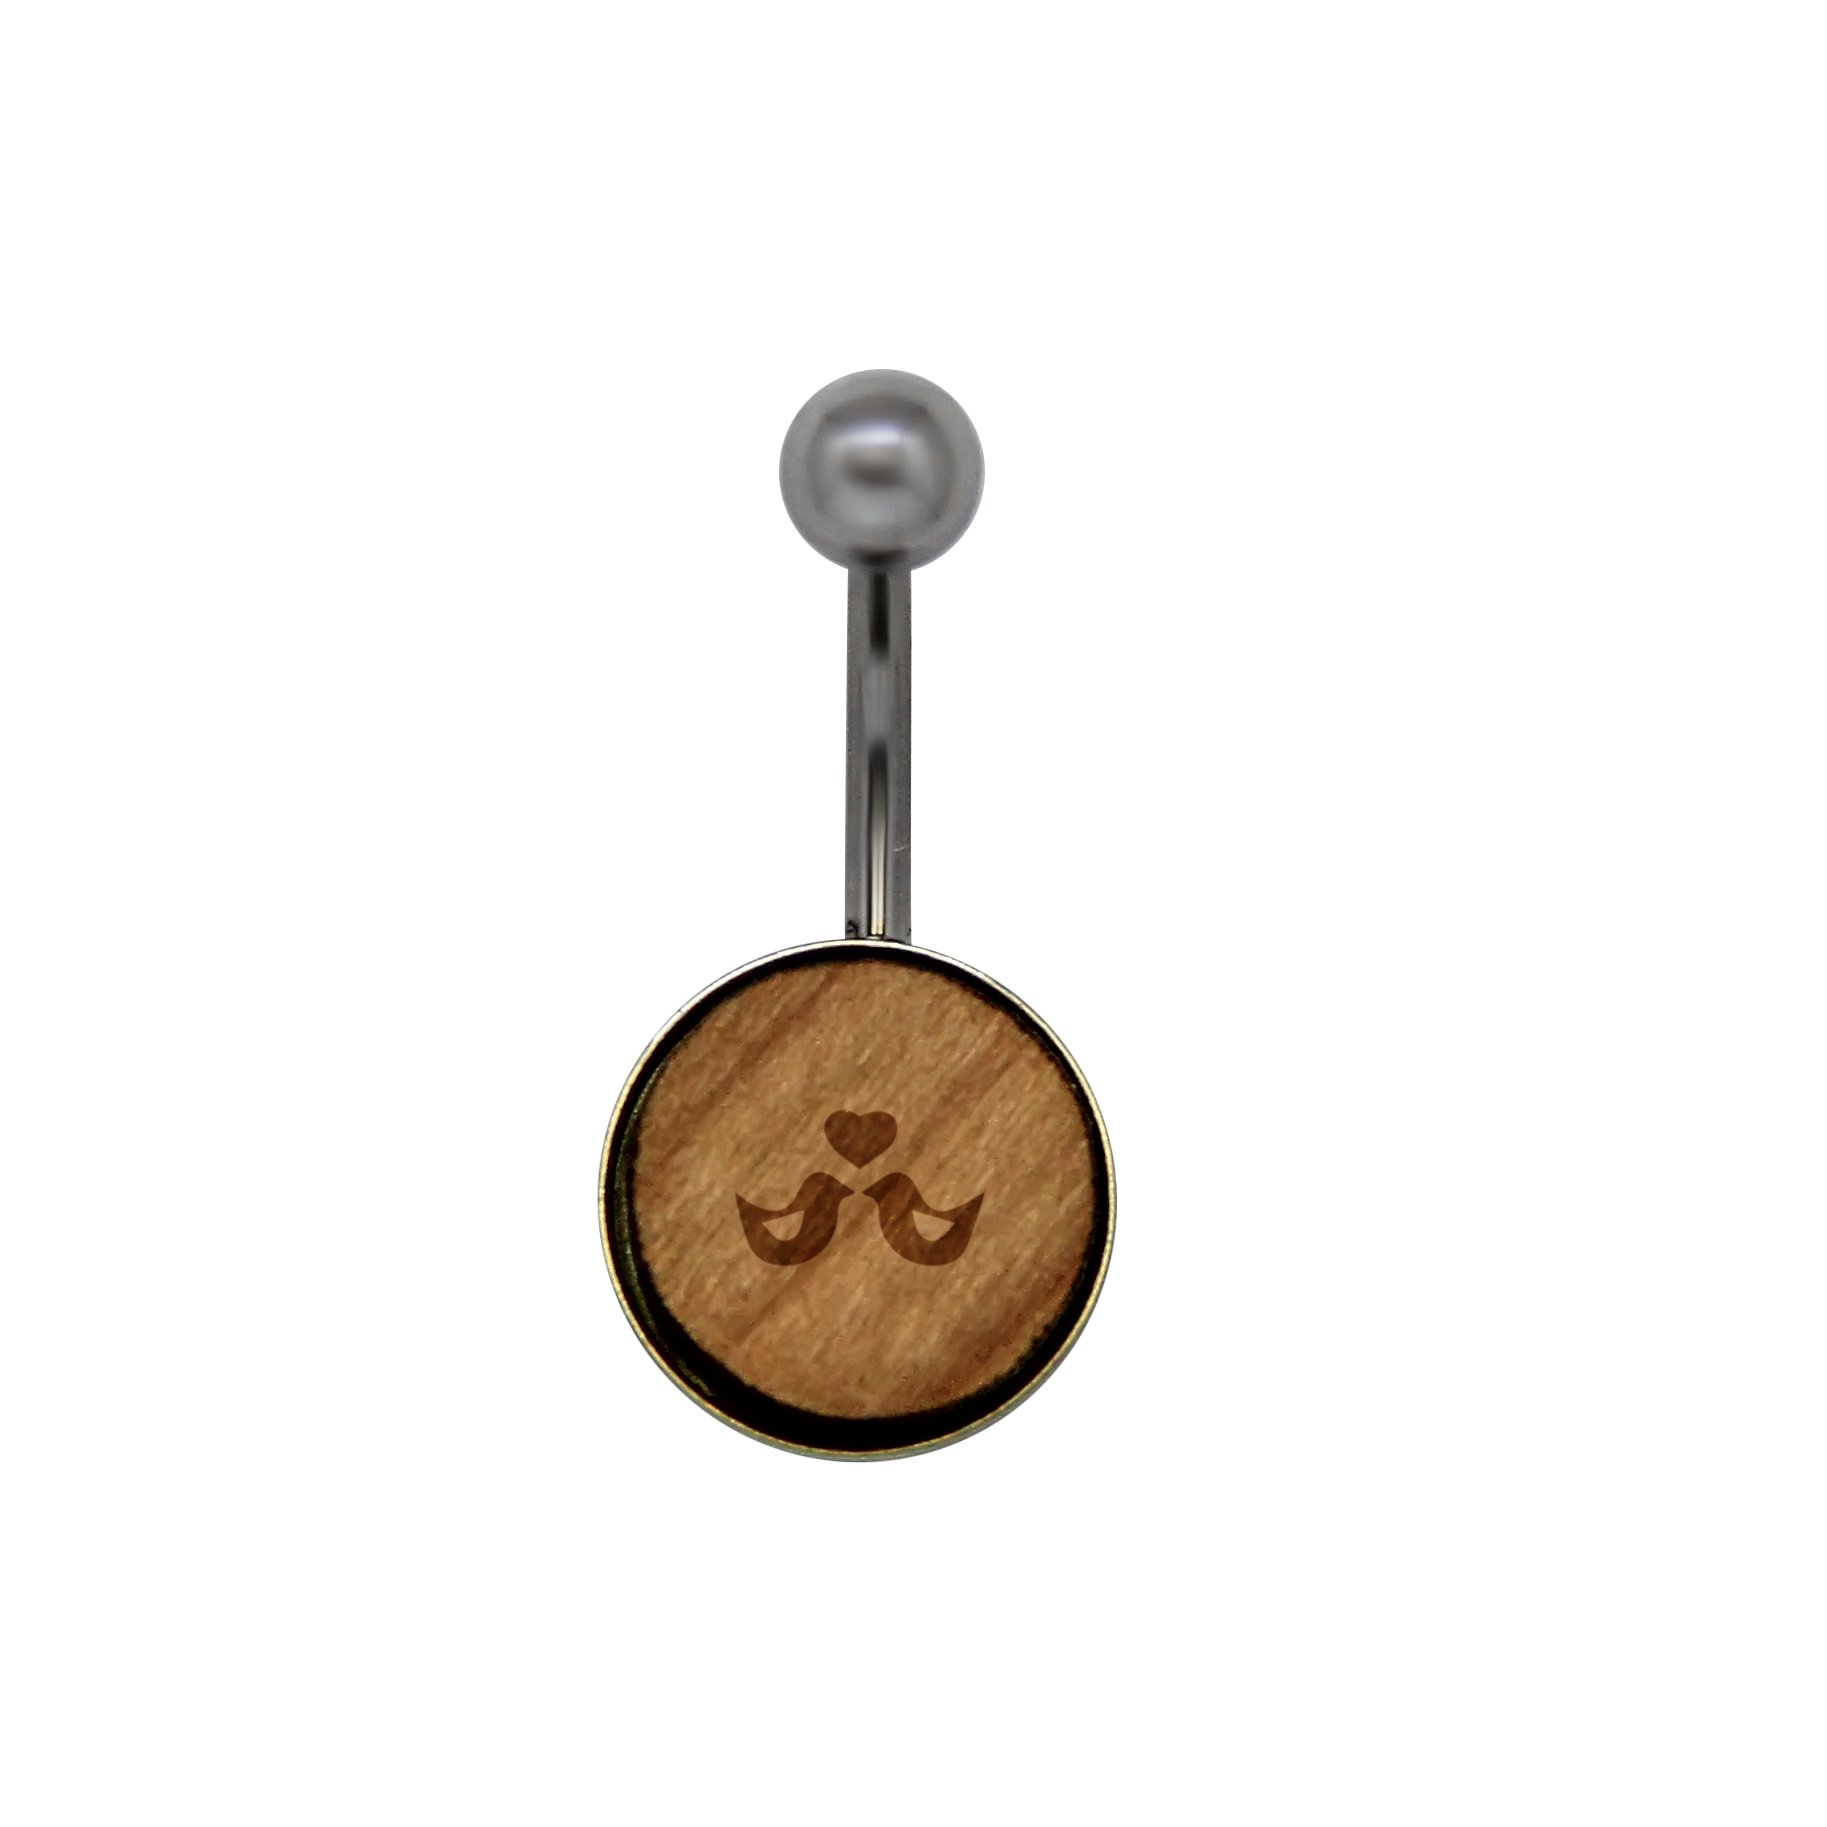 Love Birds Surgical Stainless Steel Belly Button Rings - Size 14 Gauge Wooden Navel Ring - Rustic Wood Navel Ring with Laser Engraved Design